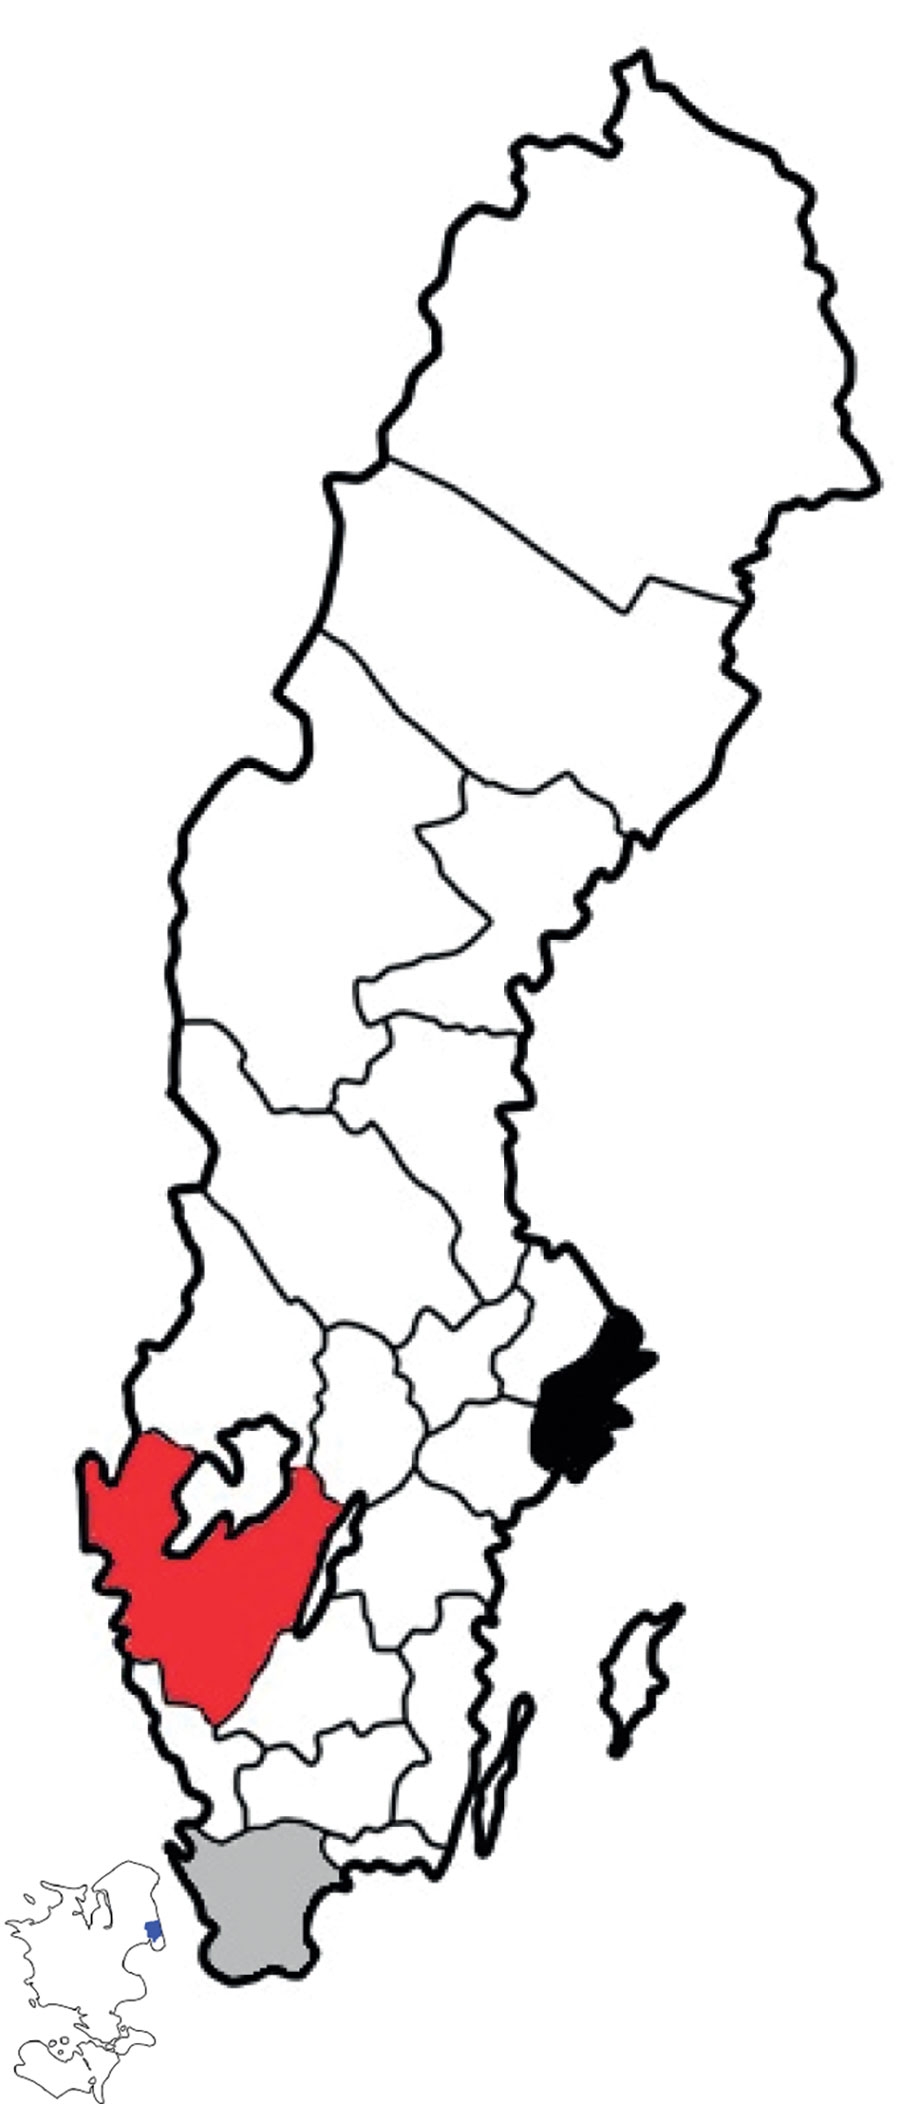 Three regions analyzed in study of nowcasting for influenza epidemics in local settings, Sweden. Black indicates Stockholm County, red West Gothia County, gray Scania County. Included in the map is the island Zeeland (Sjaelland) (which is neighboring to Scania County). Blue indicates the city of Copenhagen (population 2 million) (on the island in the left lower corner of the figure).